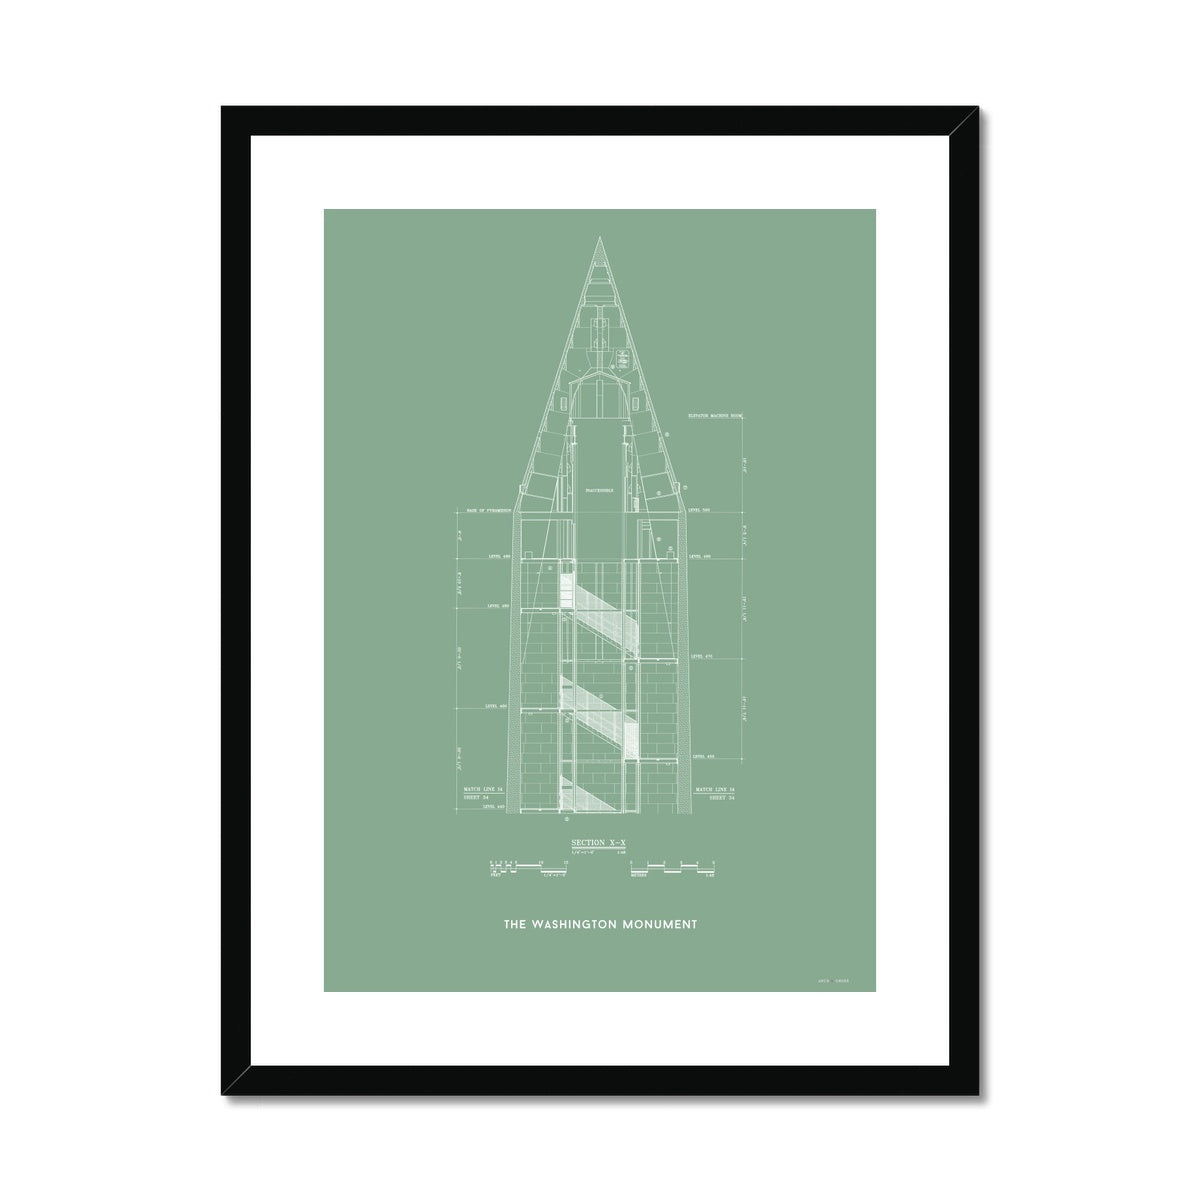 The Washington Monument Top Cross Section - Green -  Framed & Mounted Print